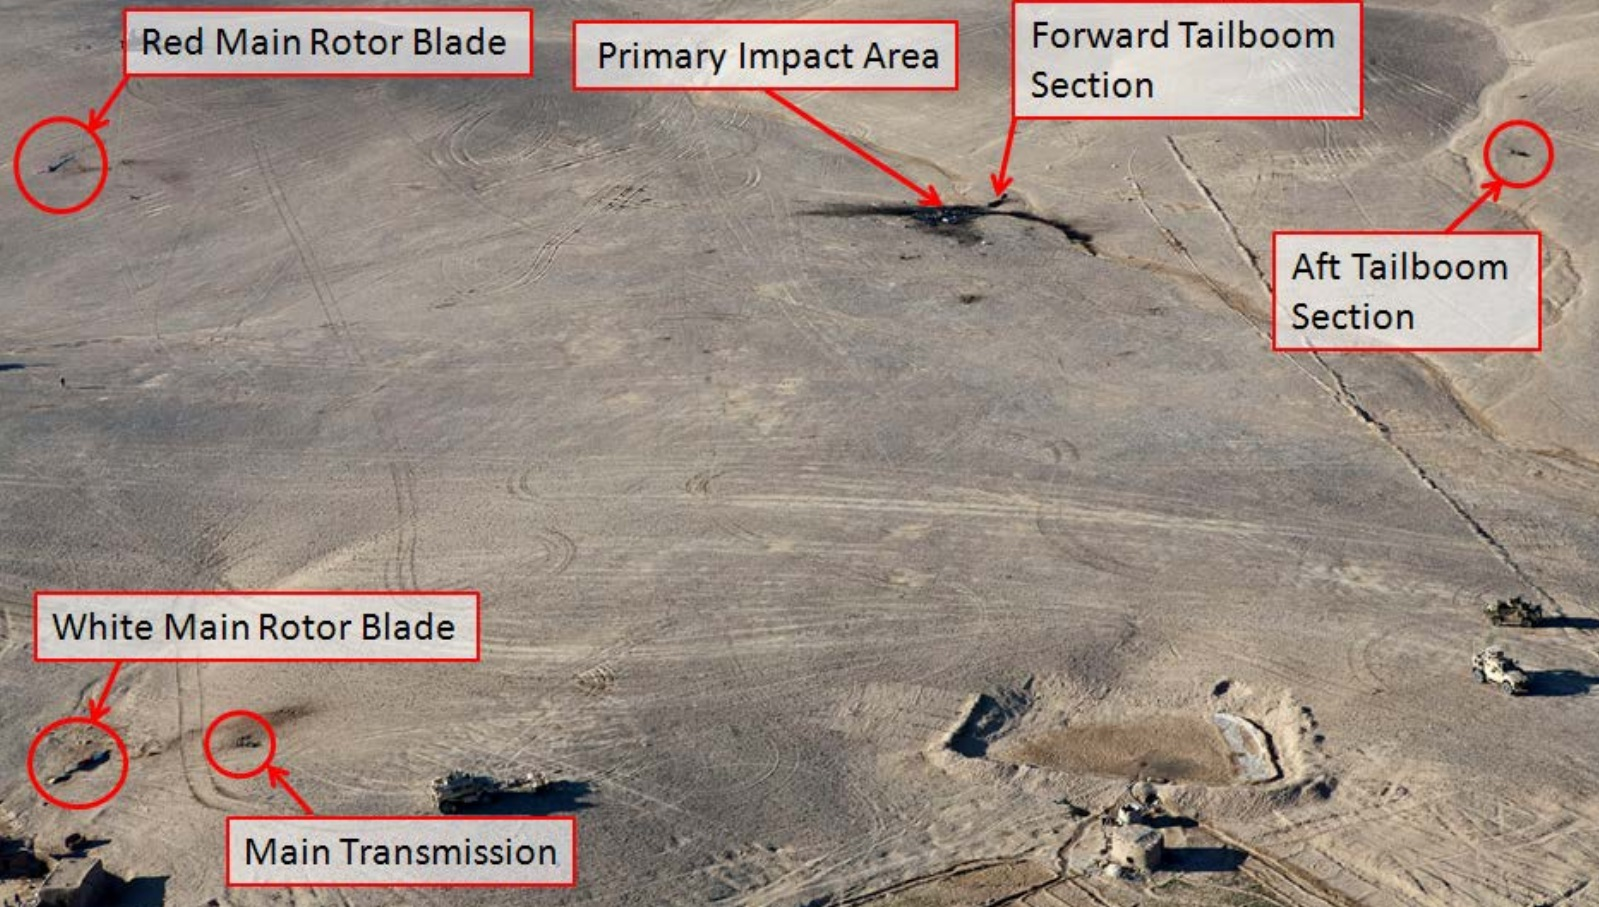 Accident Site of AAR Airlift Bell 214ST B5748M in Helmand (Credit: DOD via NTSB)